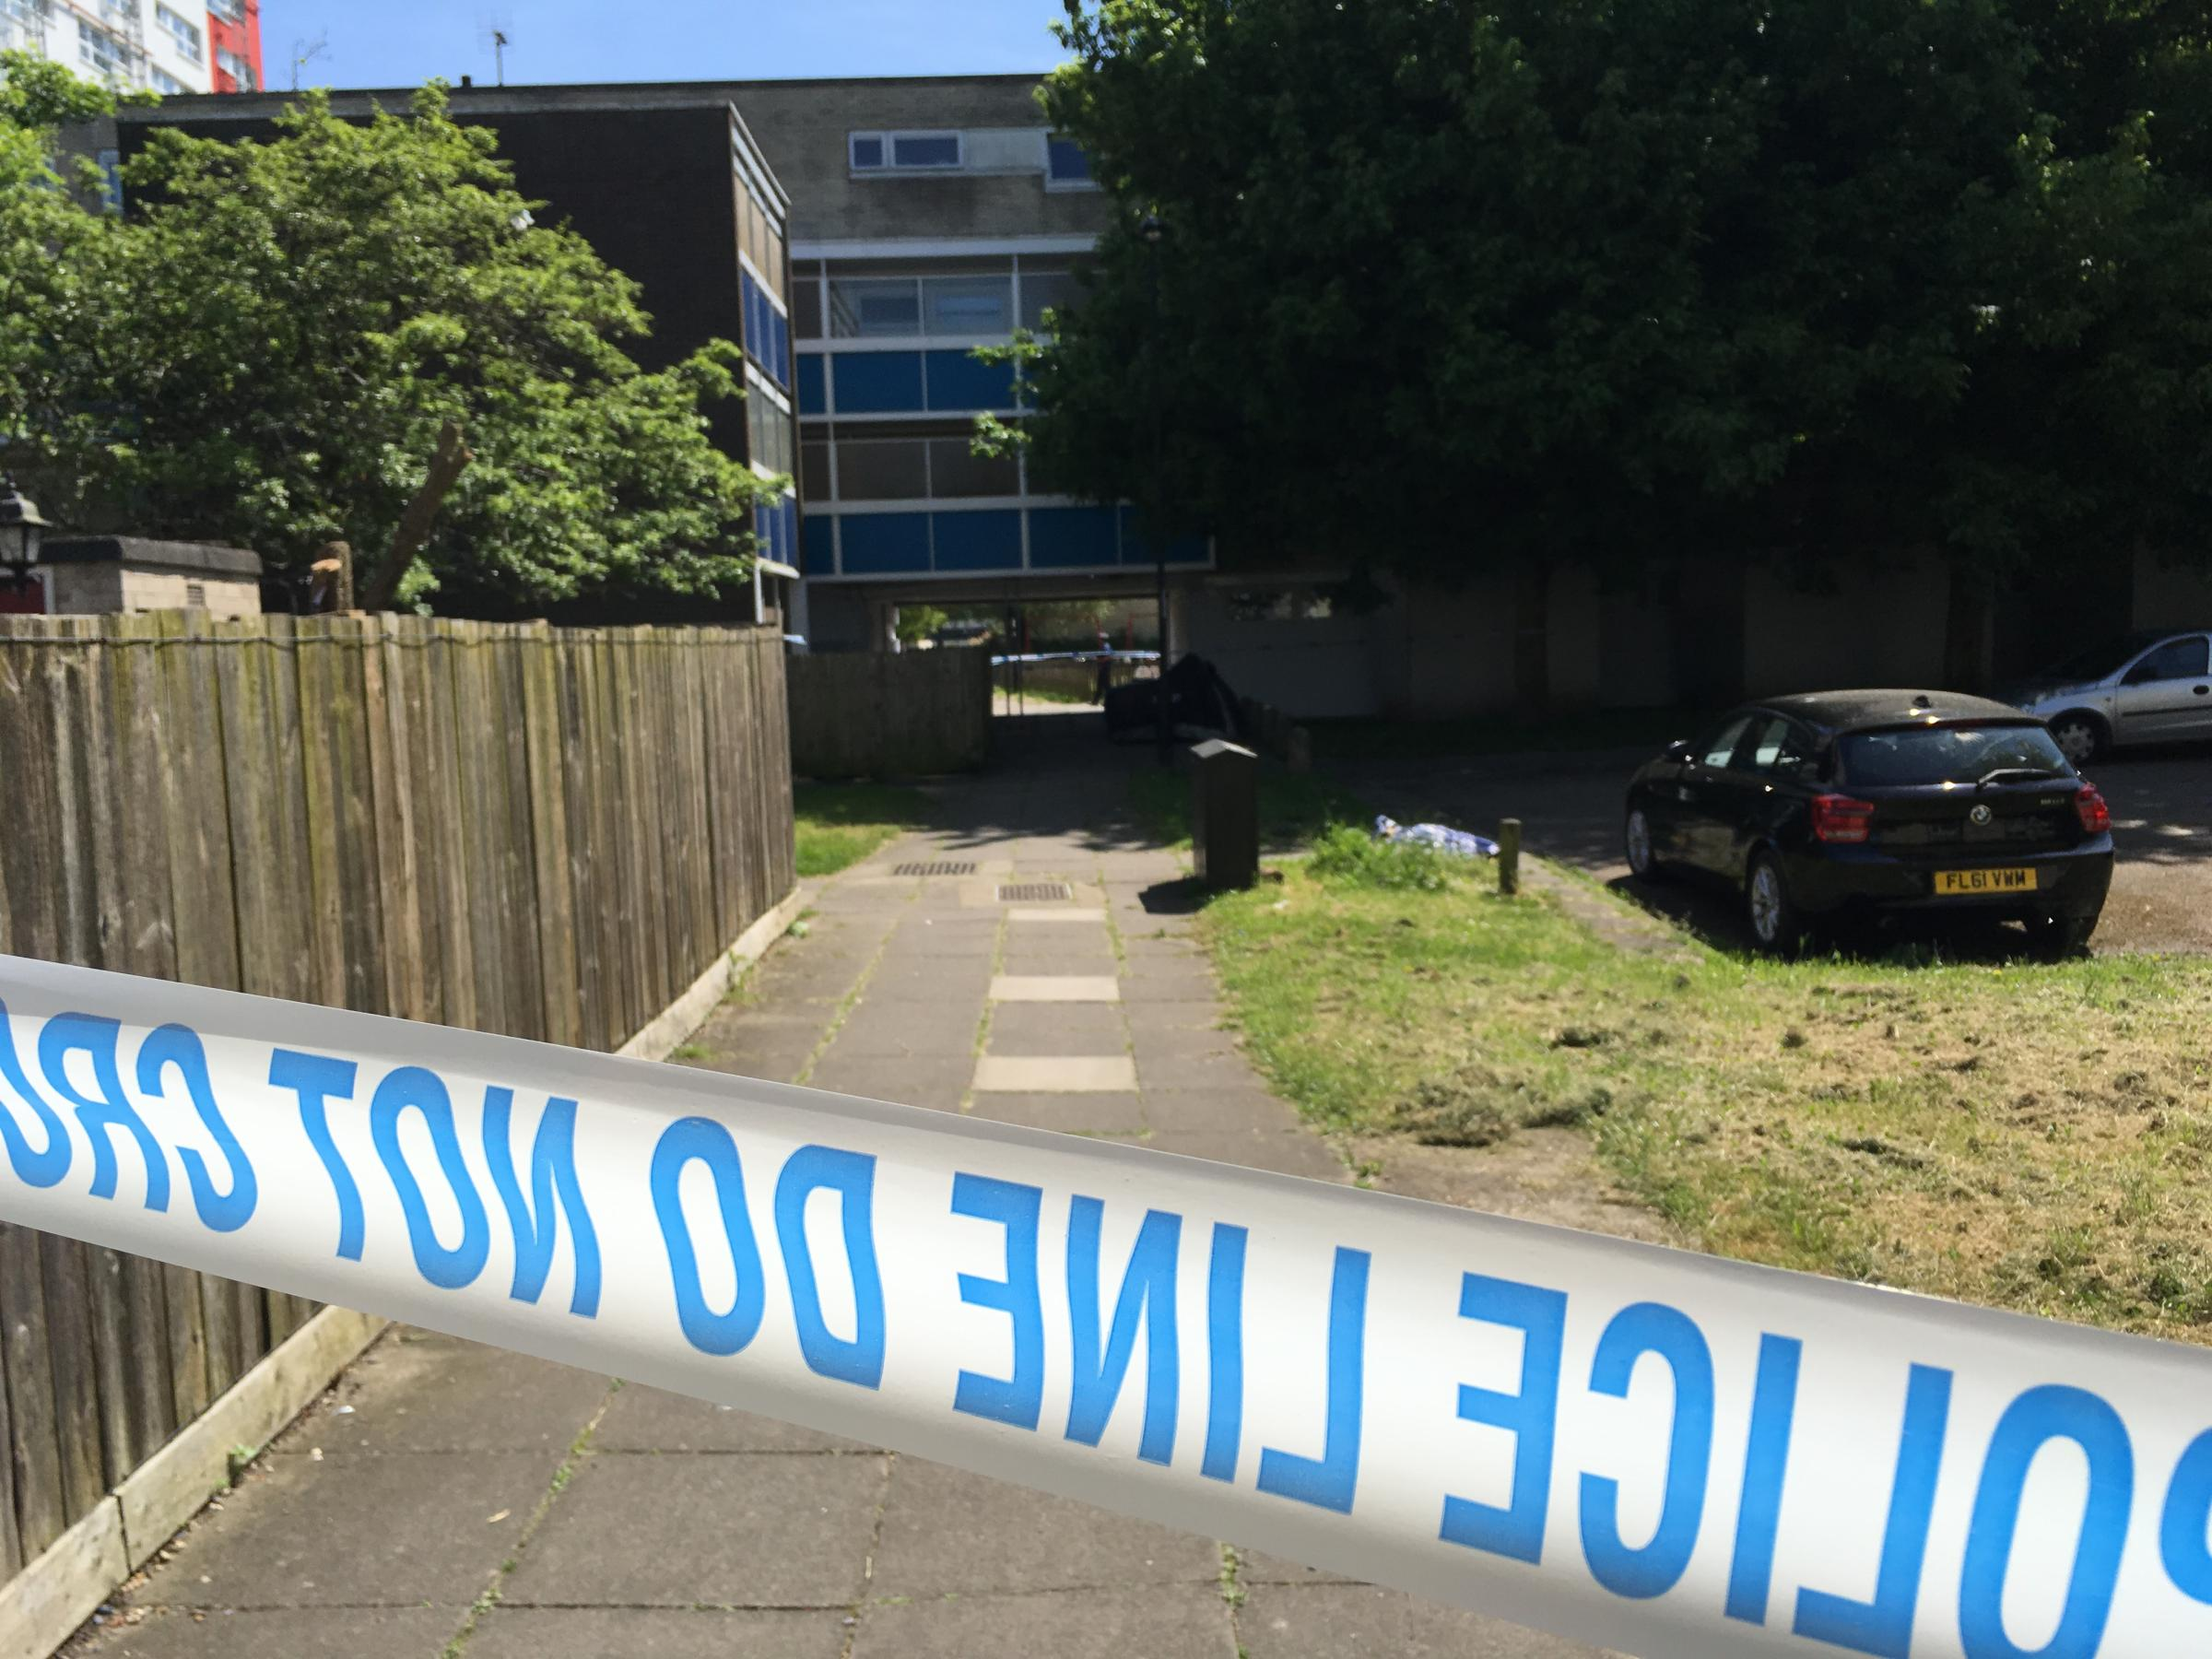 Police at the scene of Albion Towers (17/05/2018)